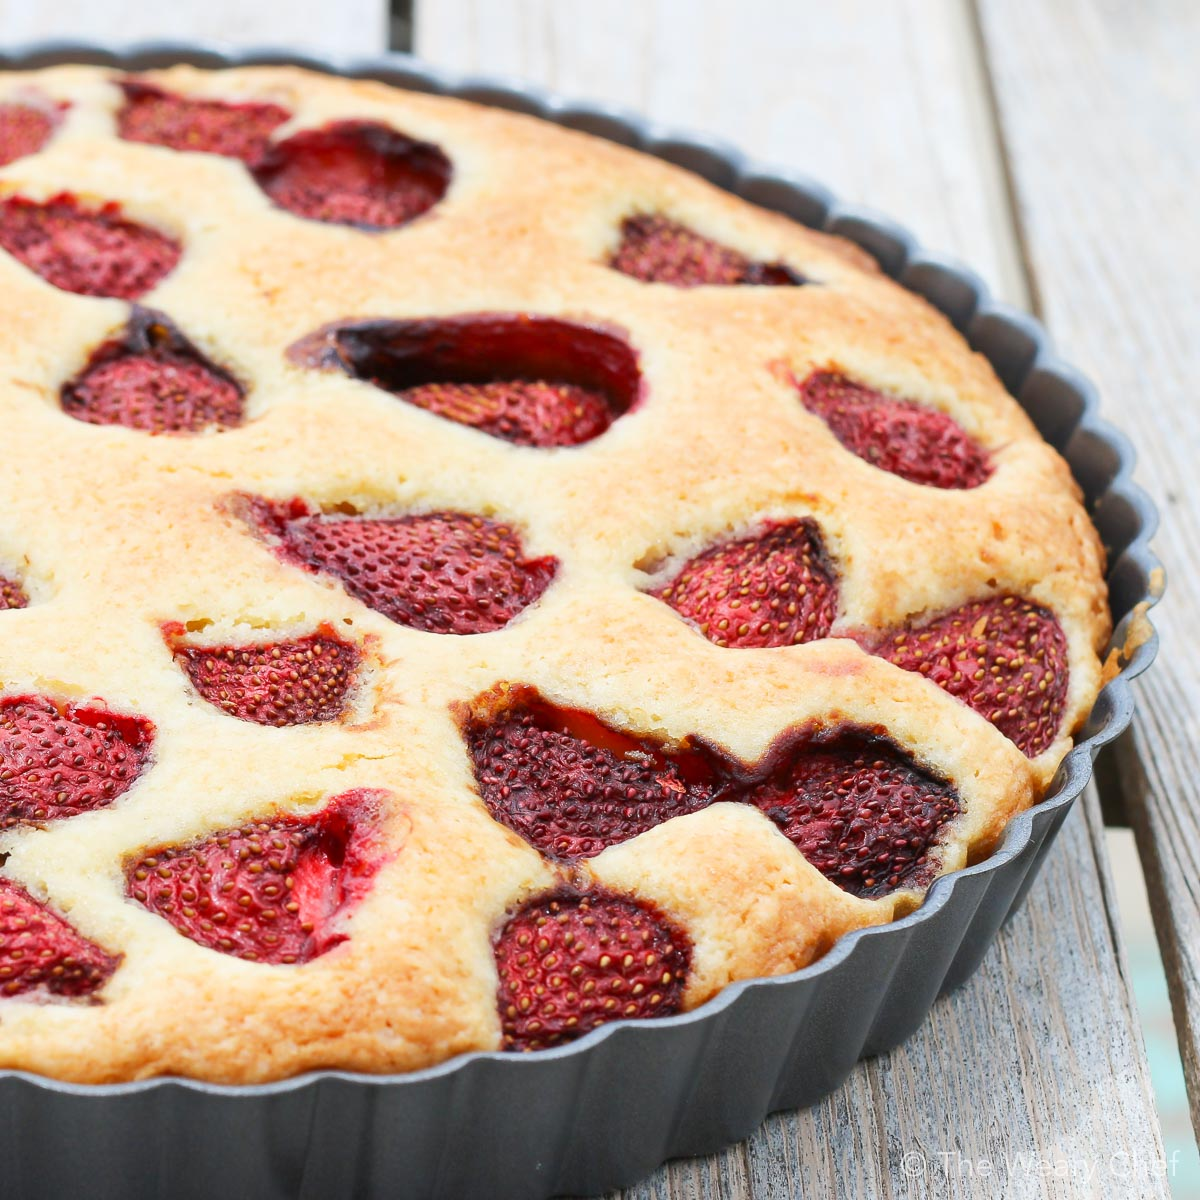 Are you ready for one of the easiest summertime desserts ever? You'll love this fresh strawberry cake! You can also make it with frozen berries any time of year.